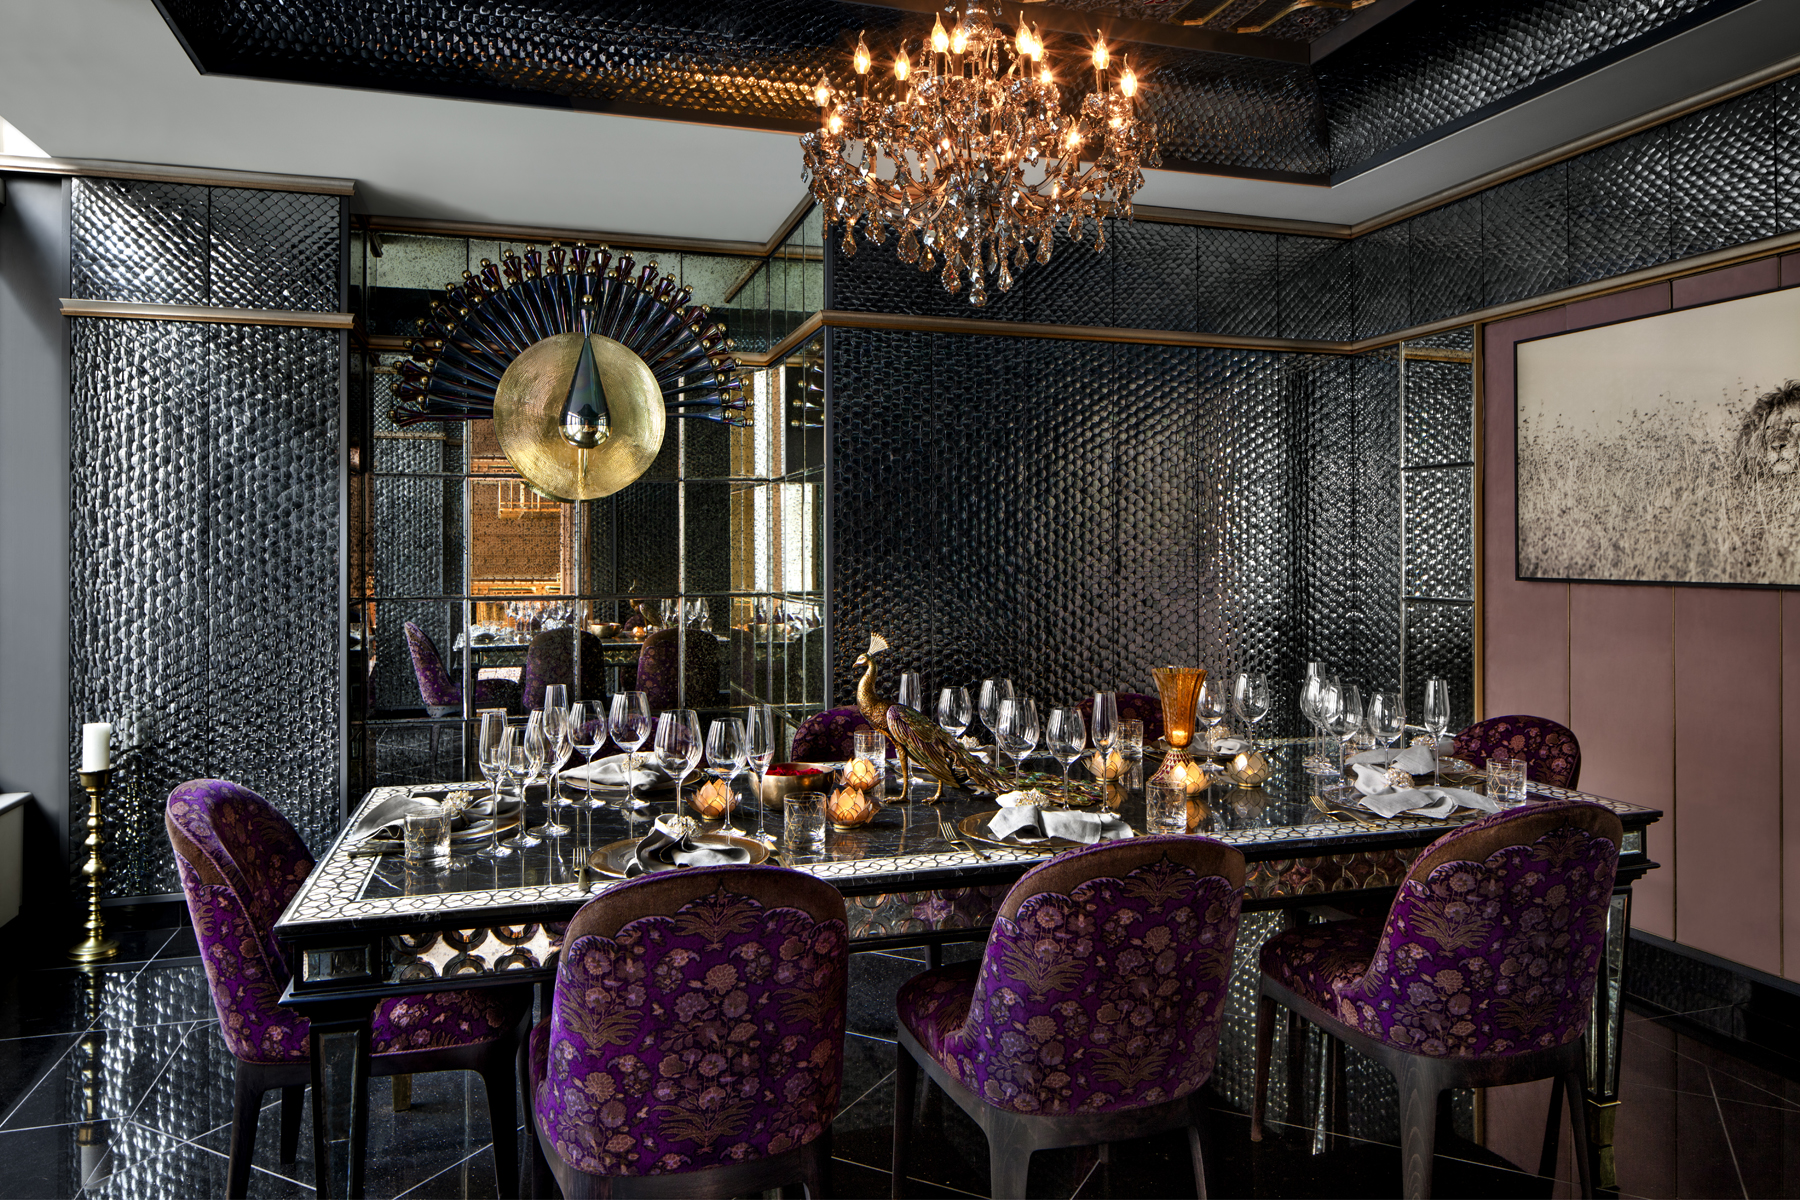 DCs Newest Fine Dining Indian Restaurant Is Built To Look Like A Dazzling Palace